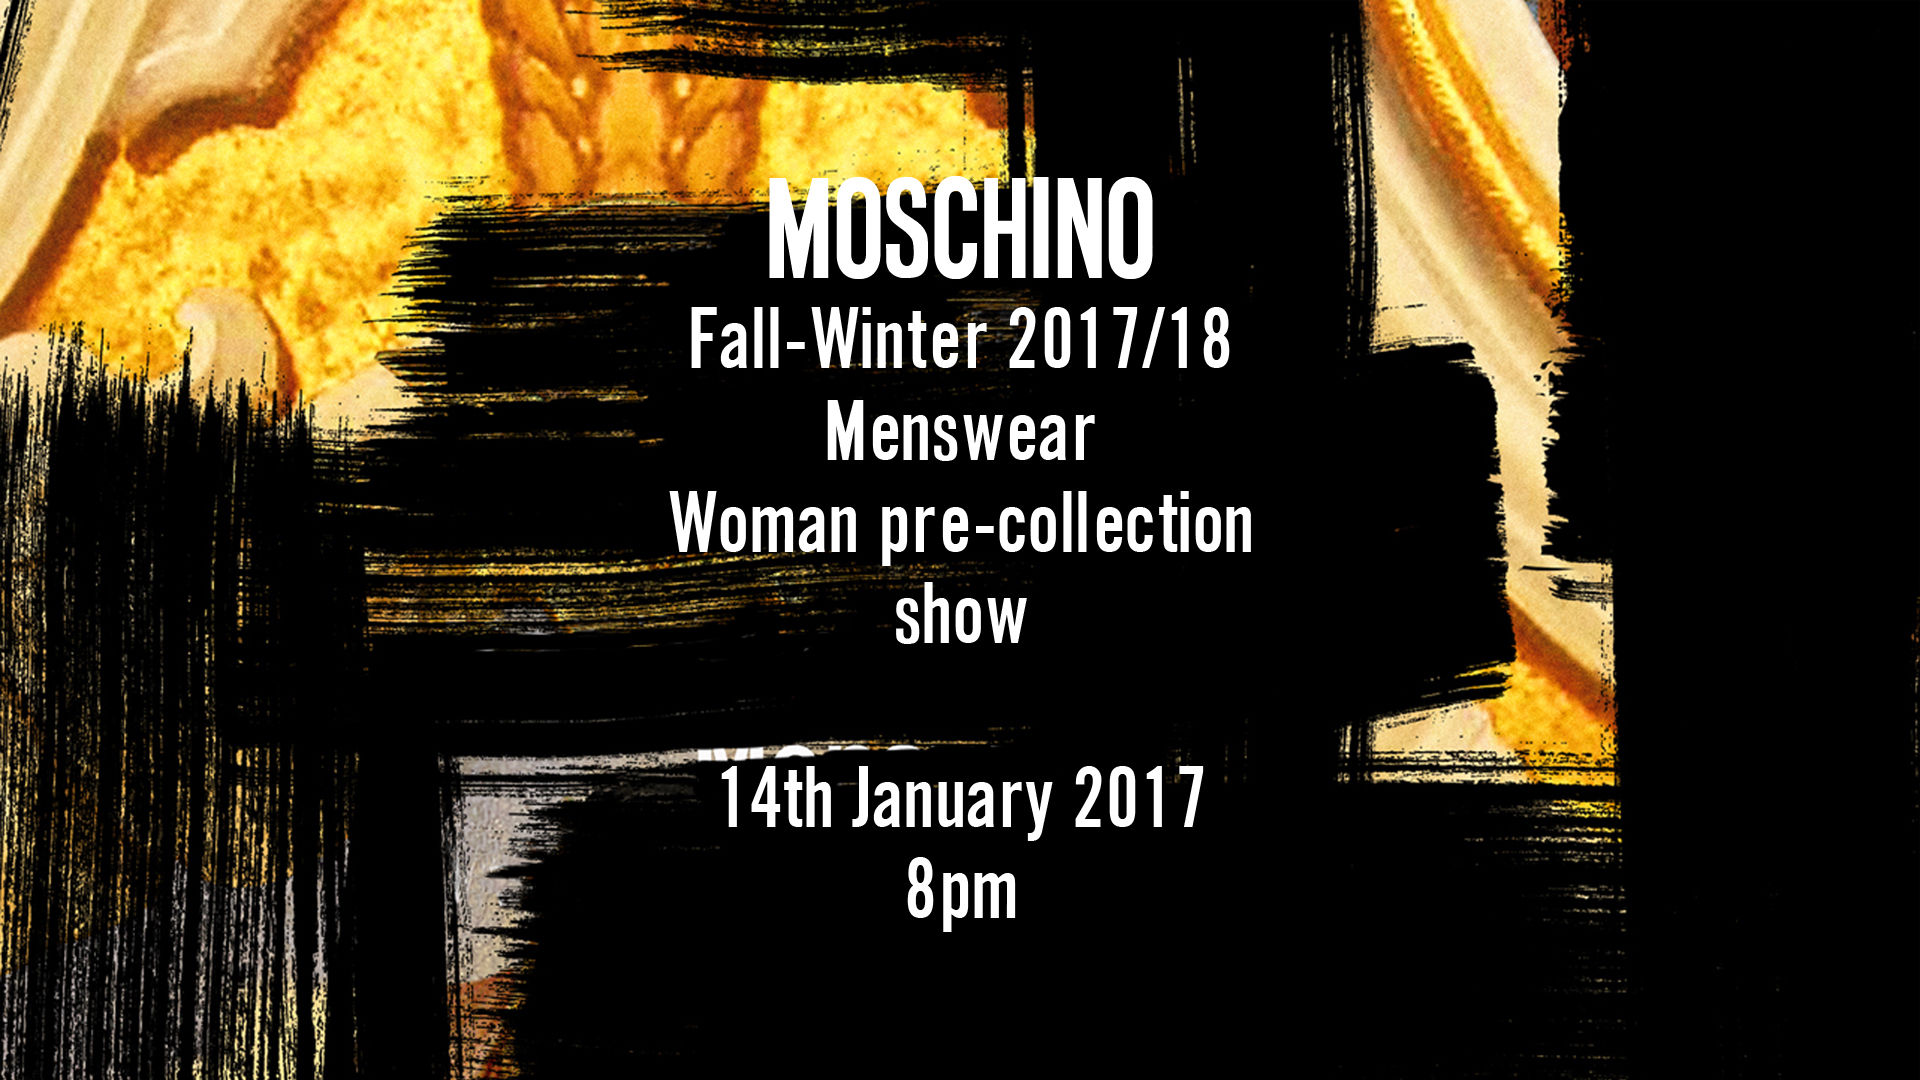 Moschino Fall Winter 2017-18 Men's Fashion Show Live Streaming